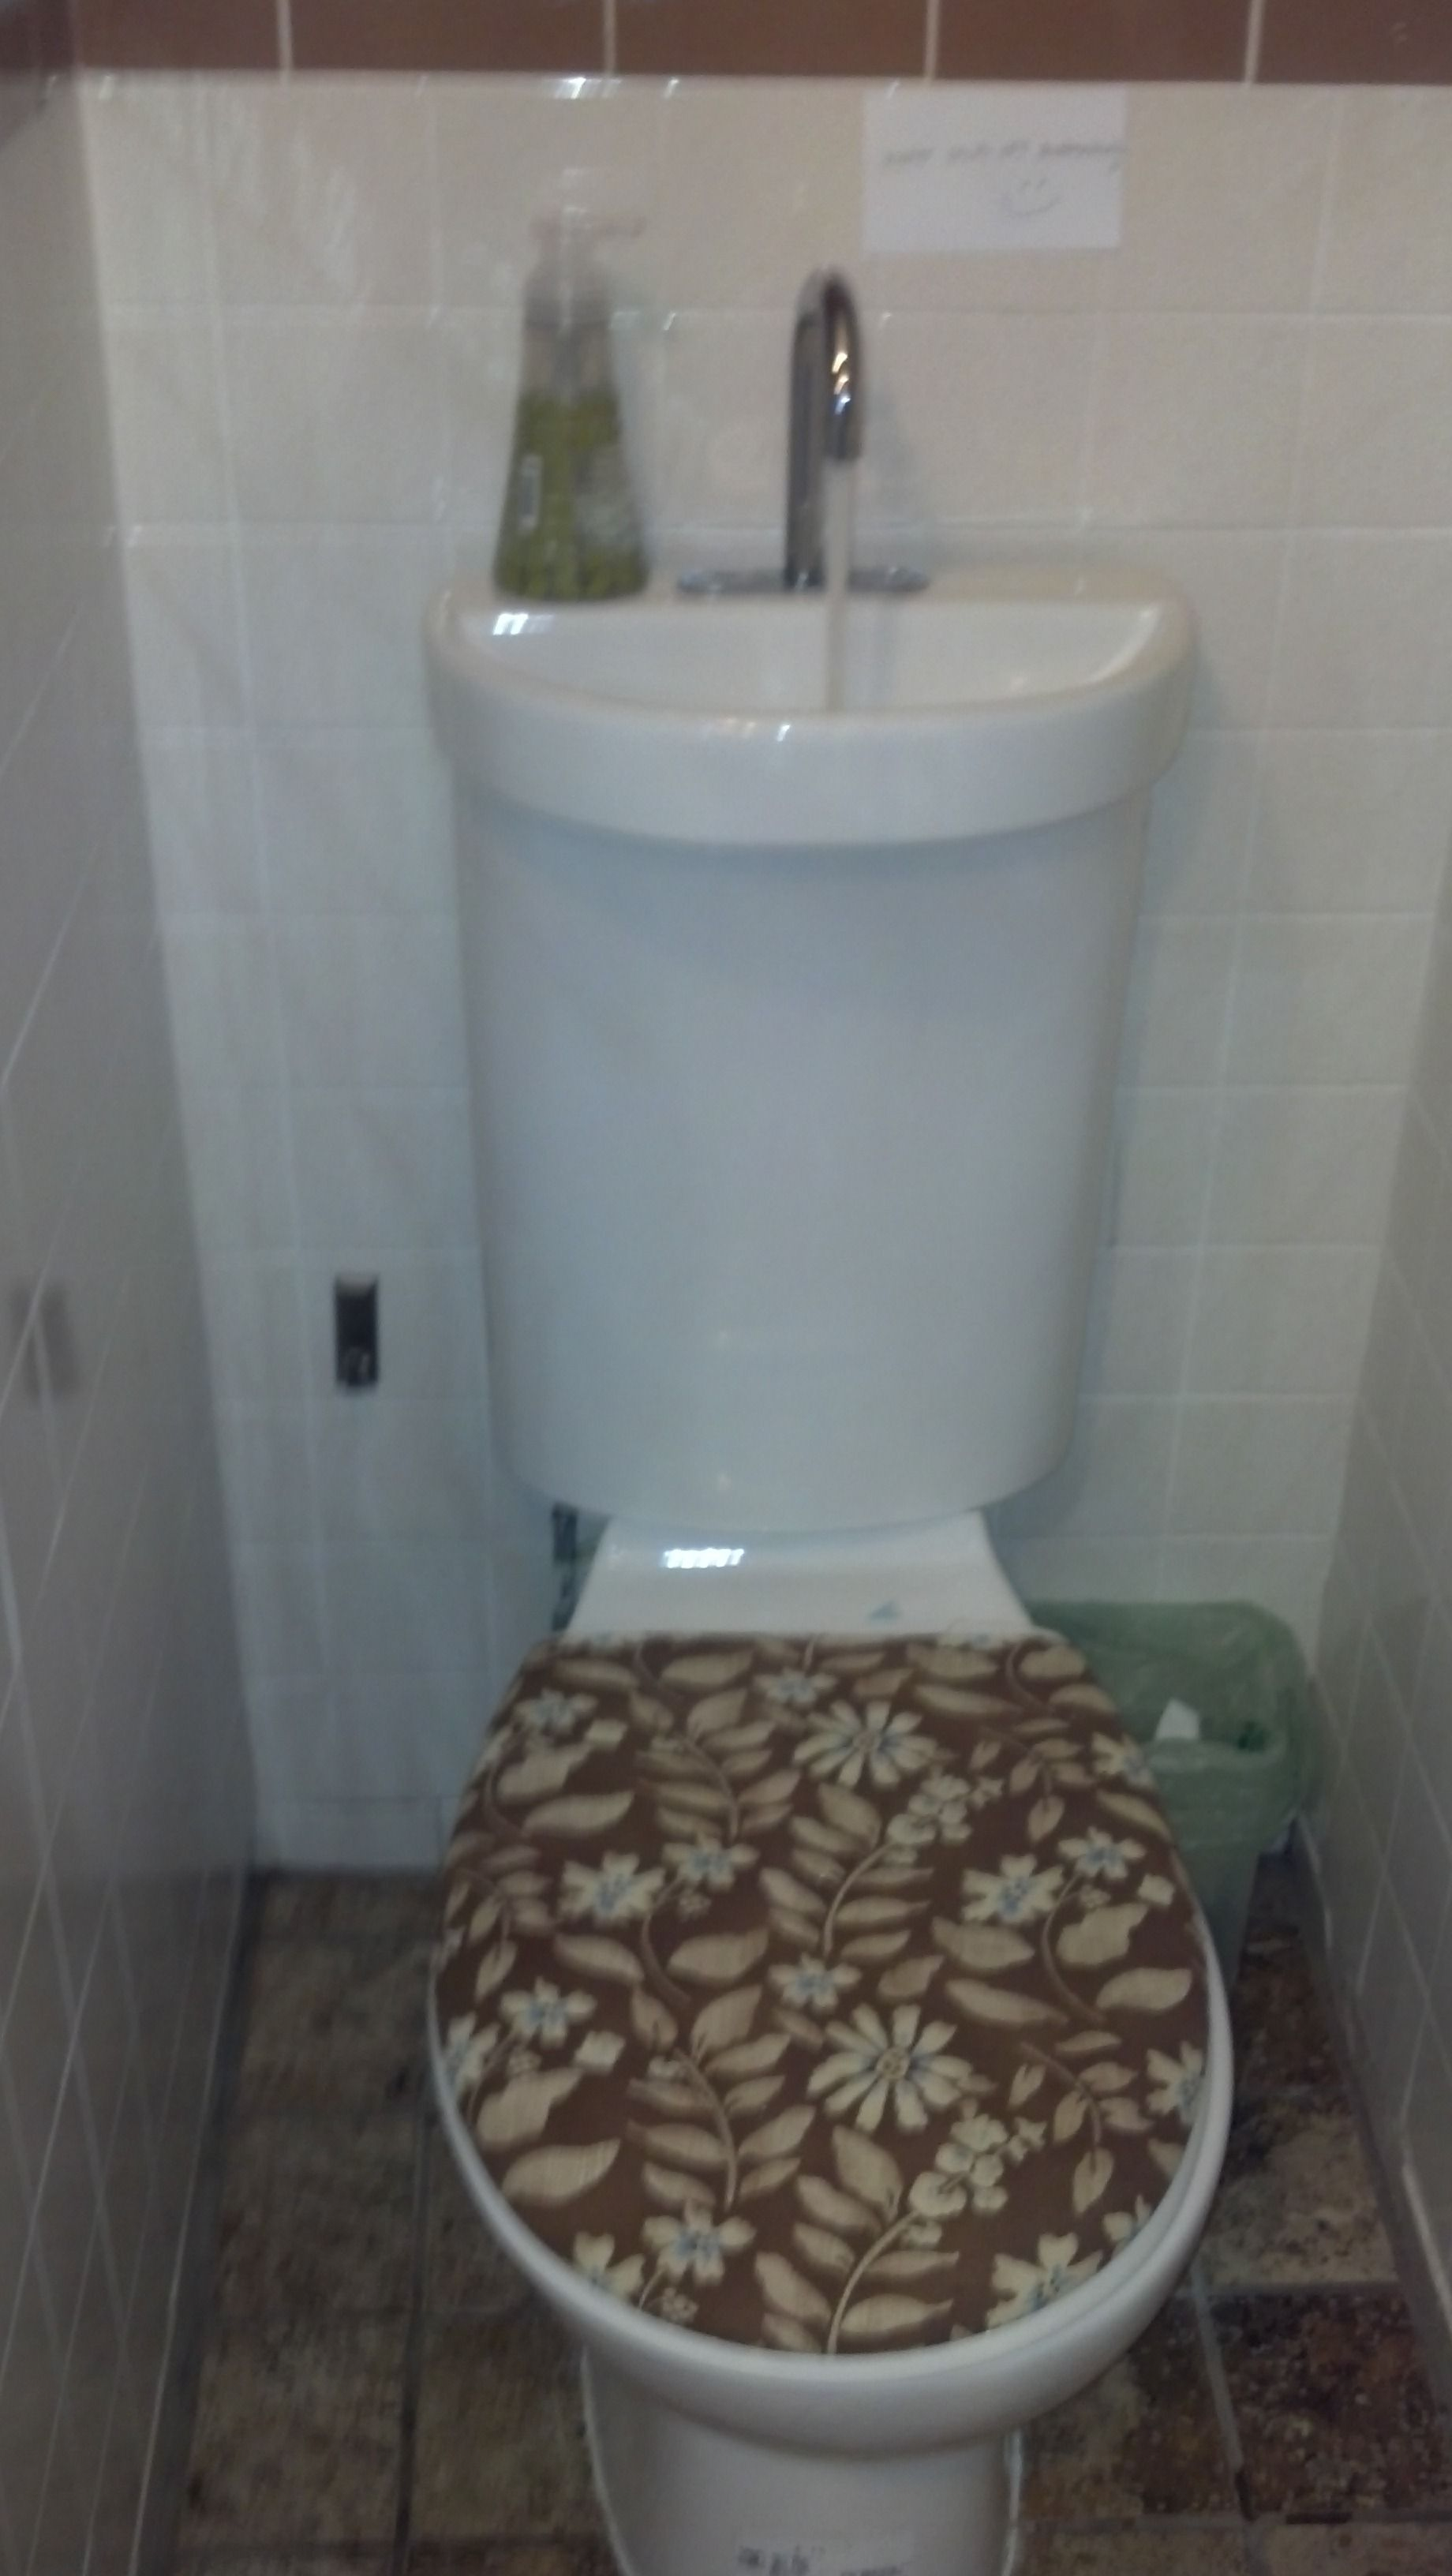 Here is another #oddity. Is this a 1/4 bath? Or is it a 1/2 bath?